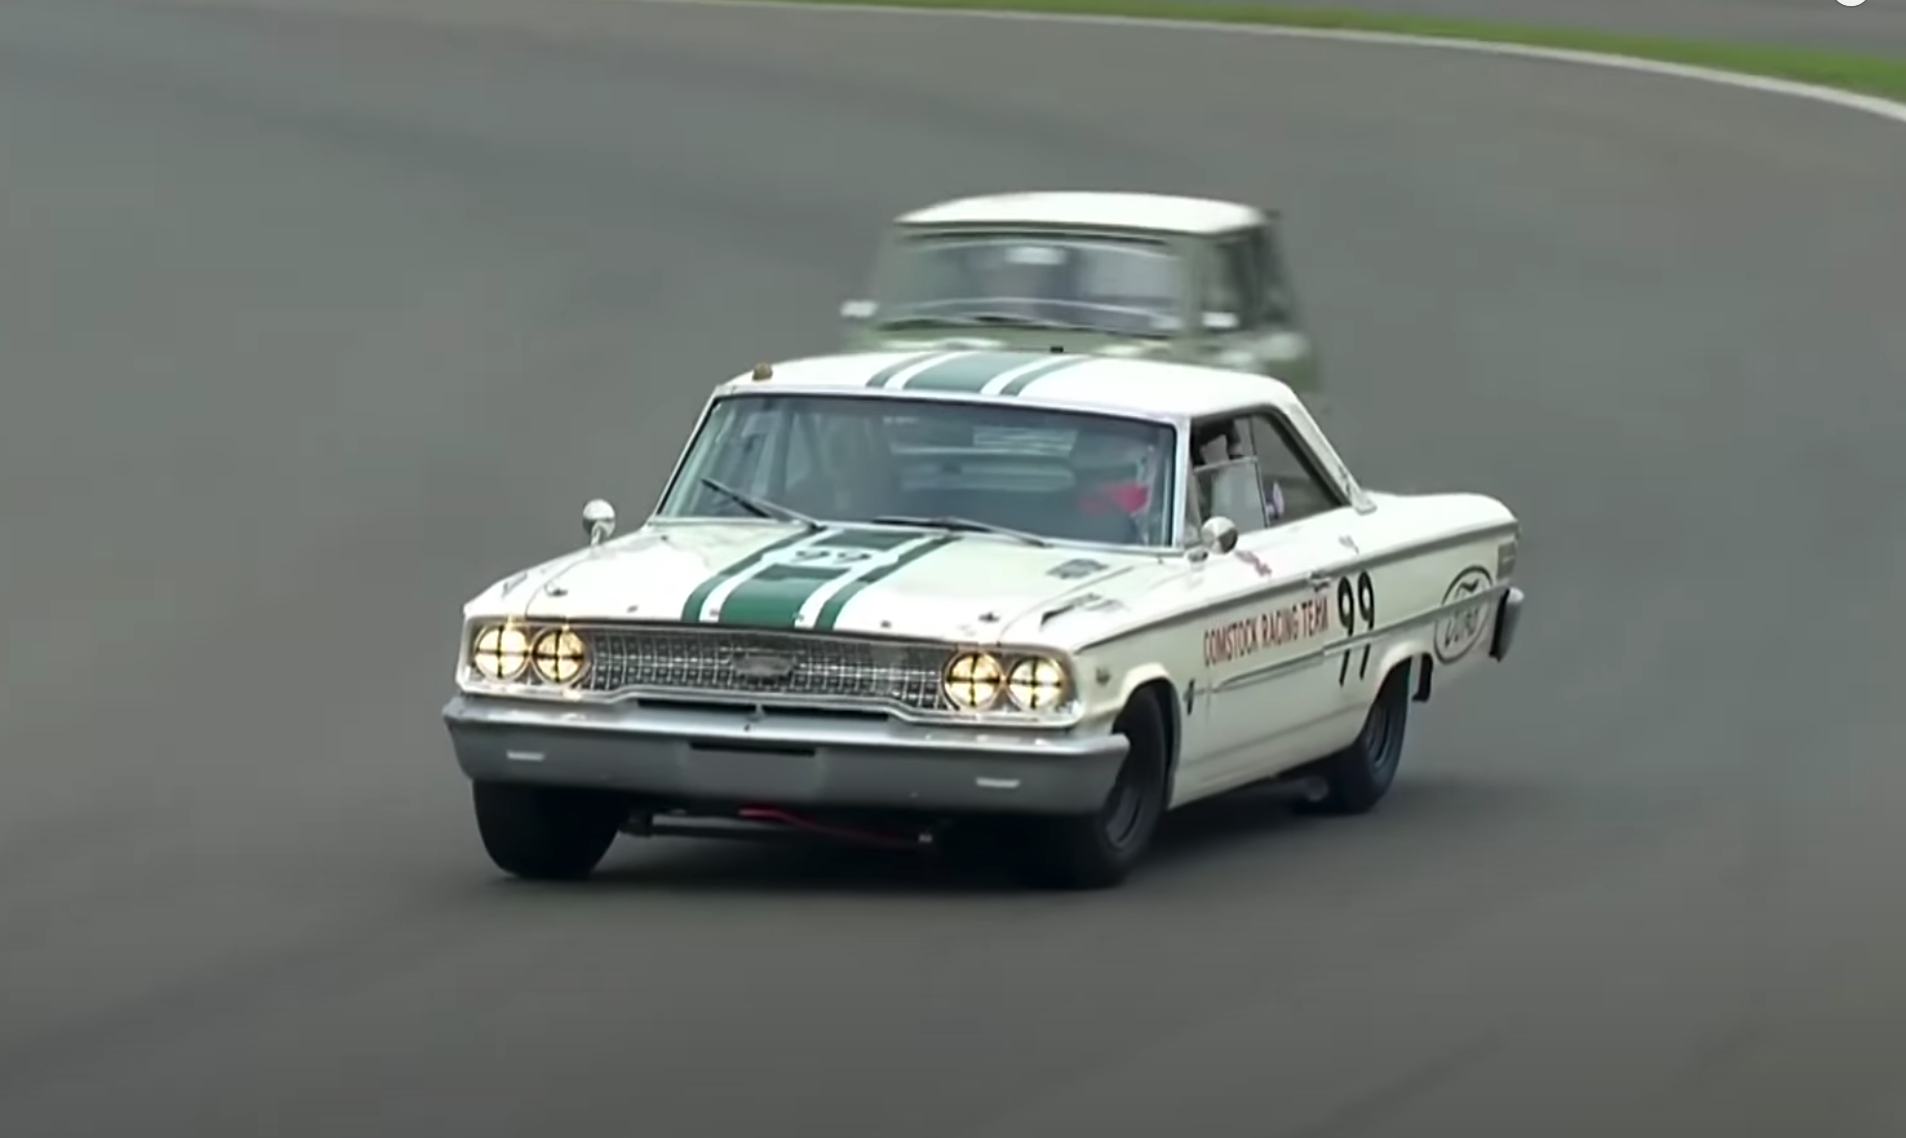 Epic Ford Galaxie battle is the highlight of Goodwood SpeedWeek